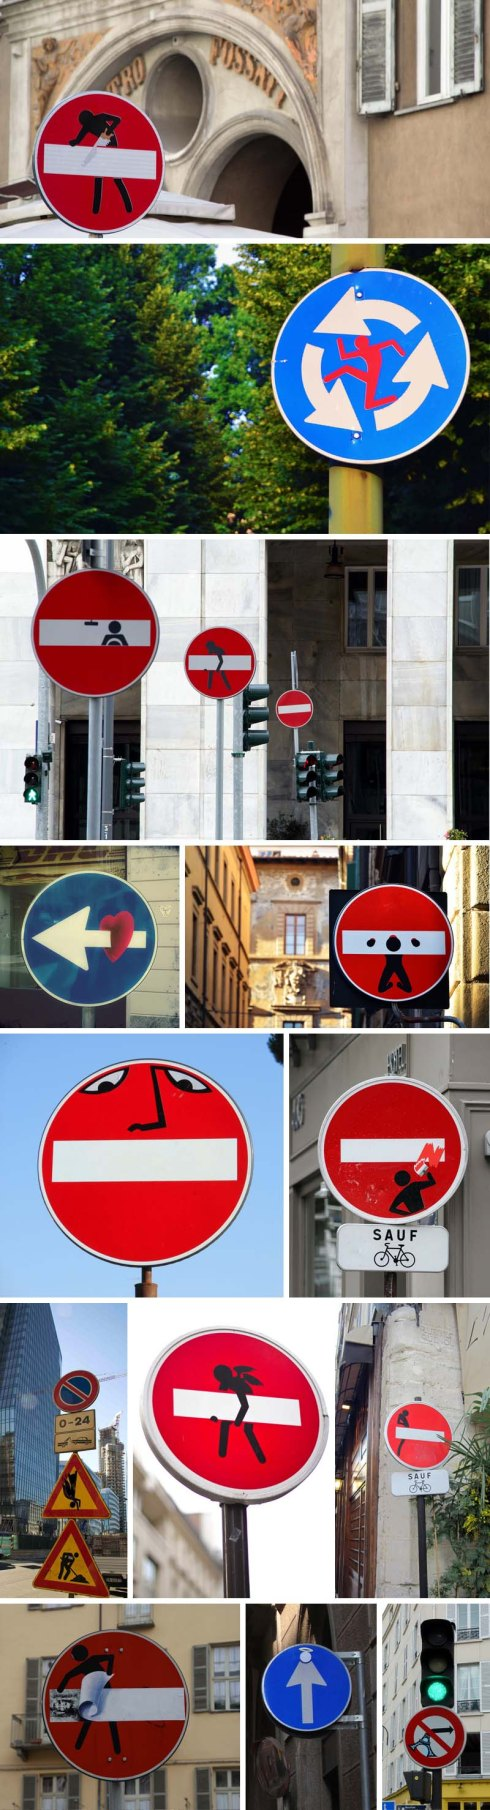 clet abraham signage sticker street art. Black Bedroom Furniture Sets. Home Design Ideas